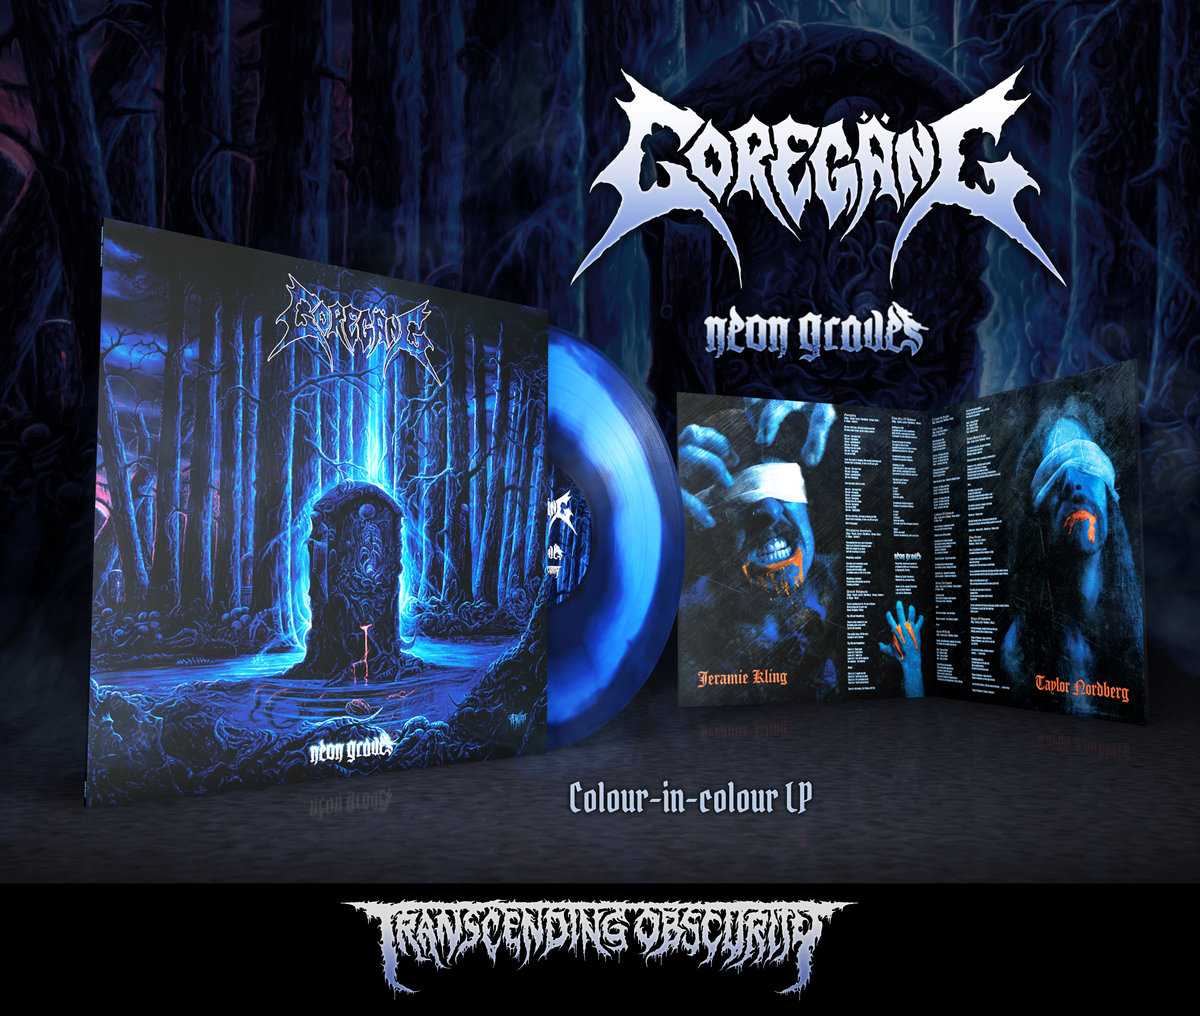 GOREGӒNG - Neon Graves (Death Metal​/​Crust) Grimace Purple with Transparent Blue LP (Limited to 150)